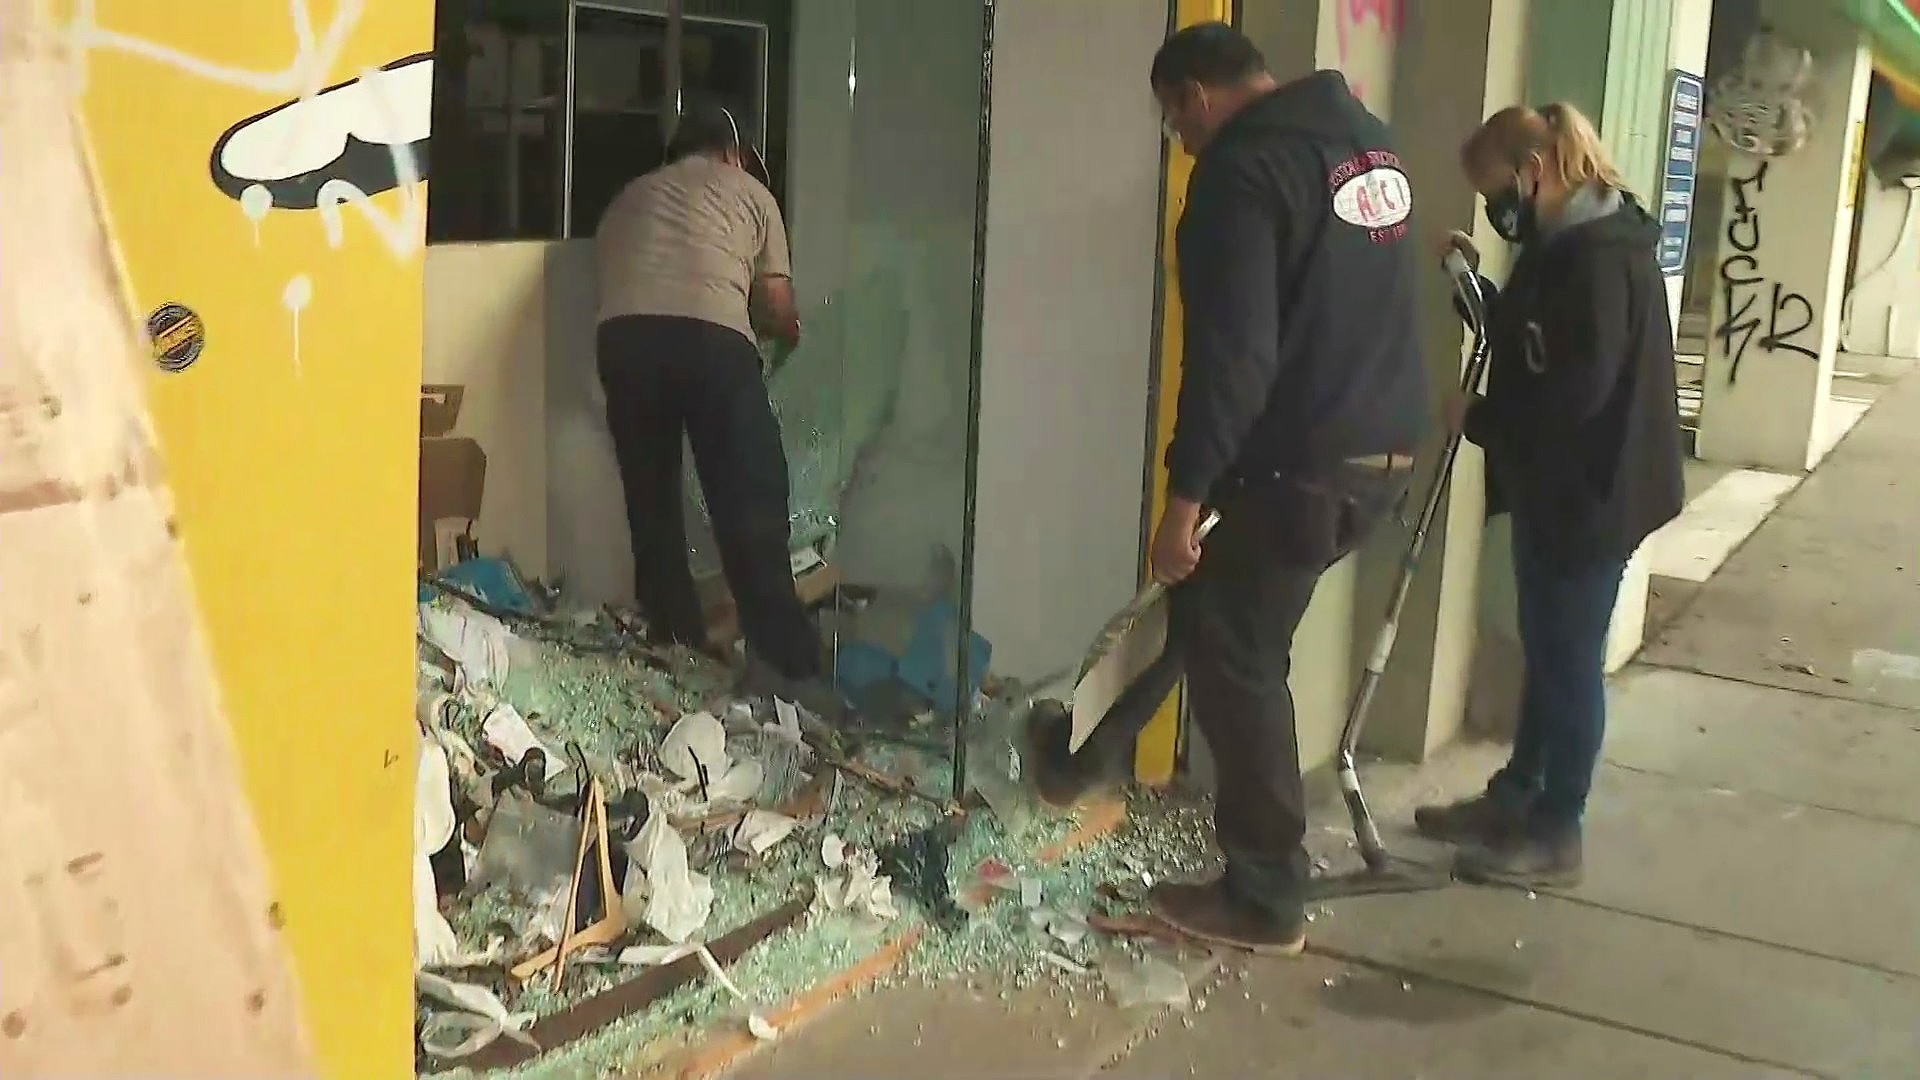 People were out cleaning up businesses in Santa Monica on June 1, 2020. (KTLA)